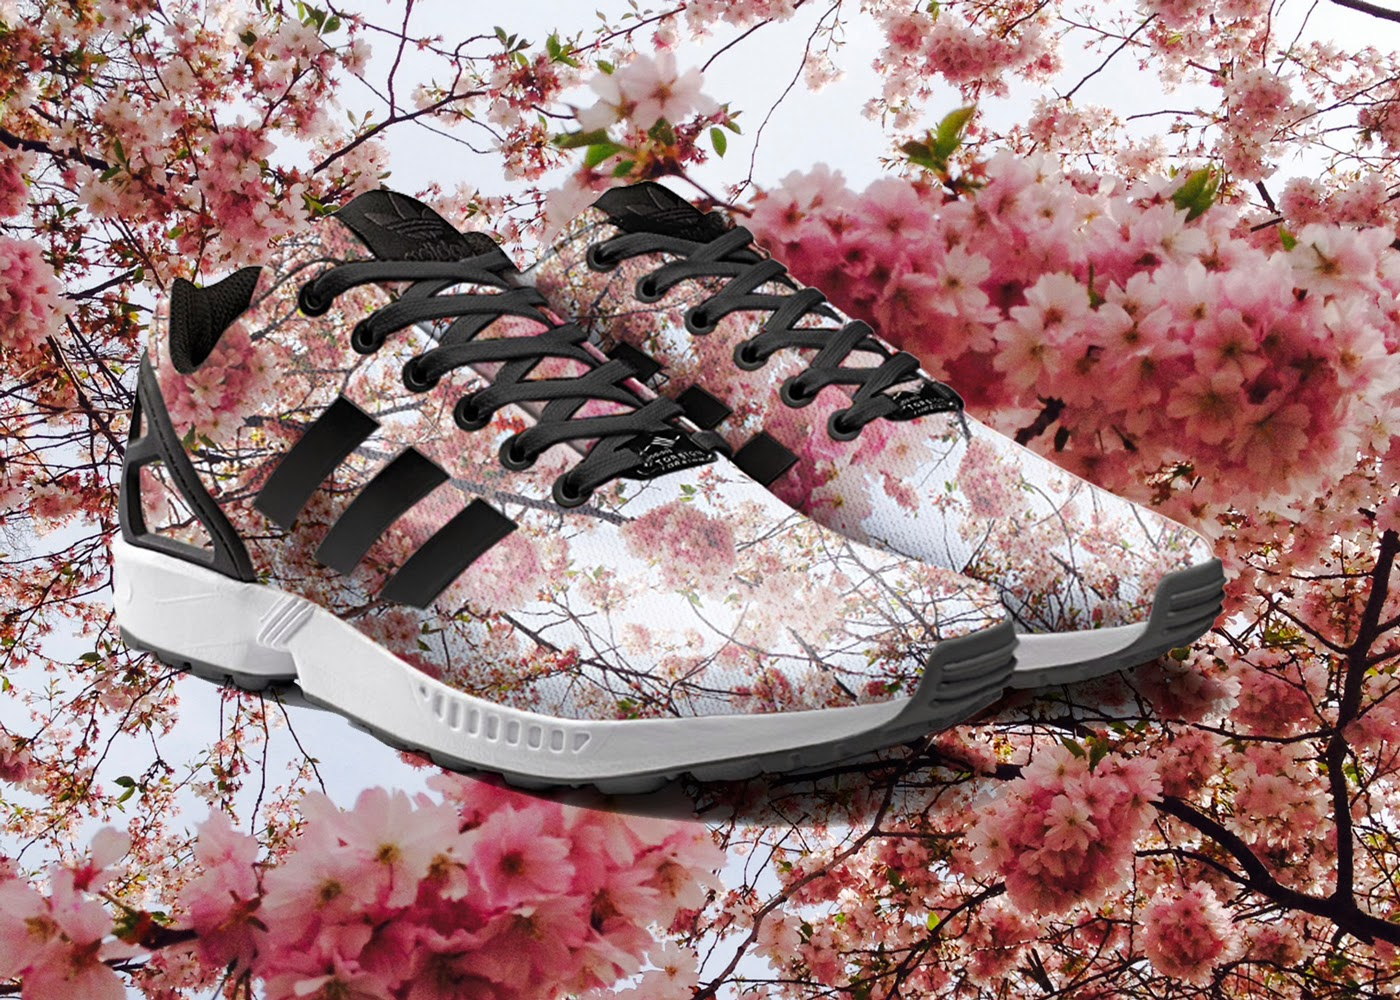 07-mi-Adidas-ZX-Flux-Shoe-App-to-Customise-your-Shoes-www-designstack-co